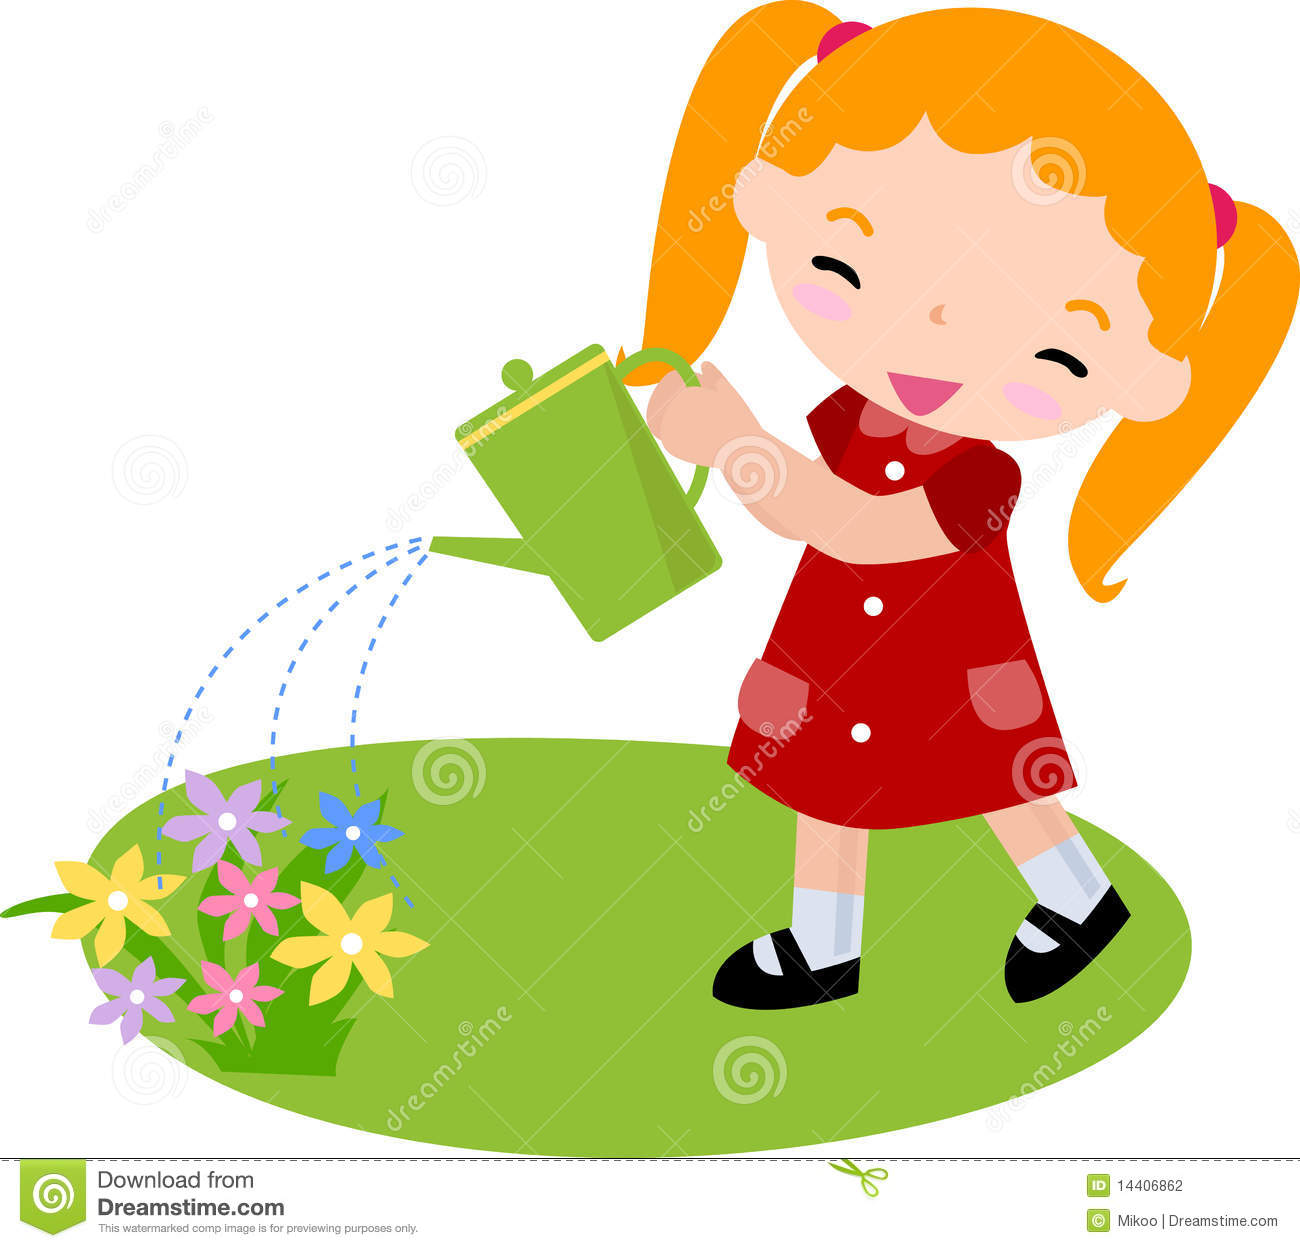 Plant clipart little plant Watering Illustrations collection watering Girl